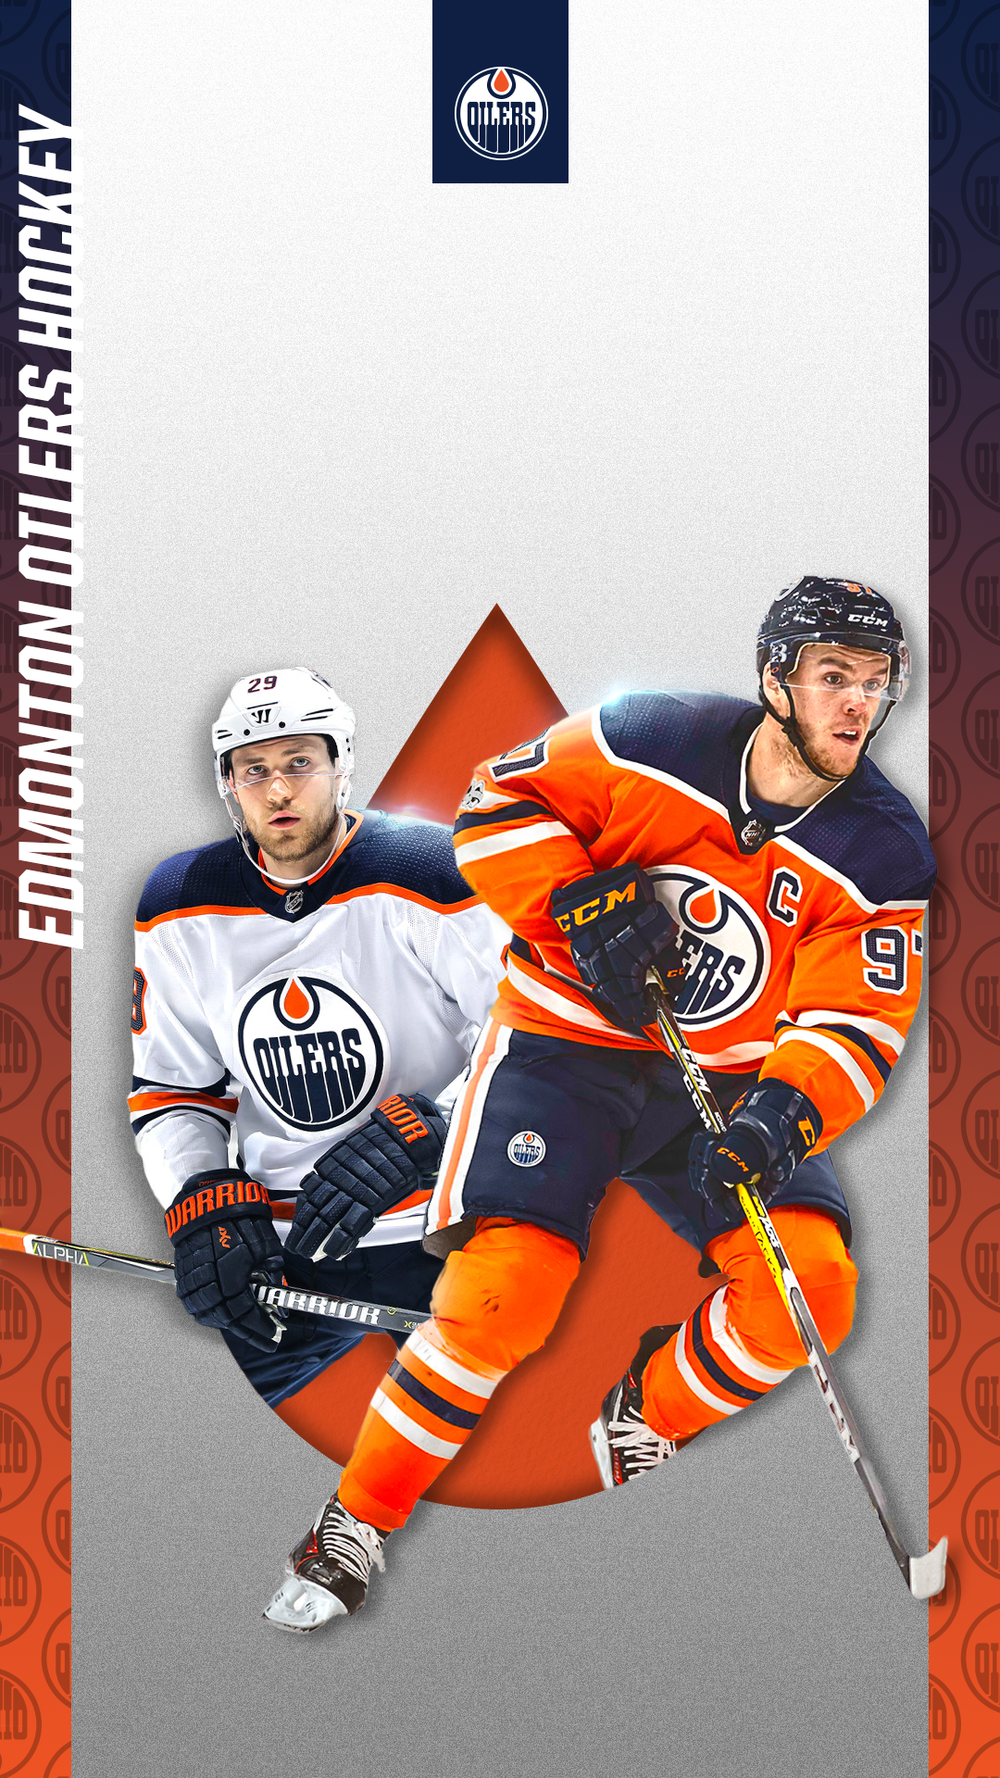 Wallpaper5_Oilers.png